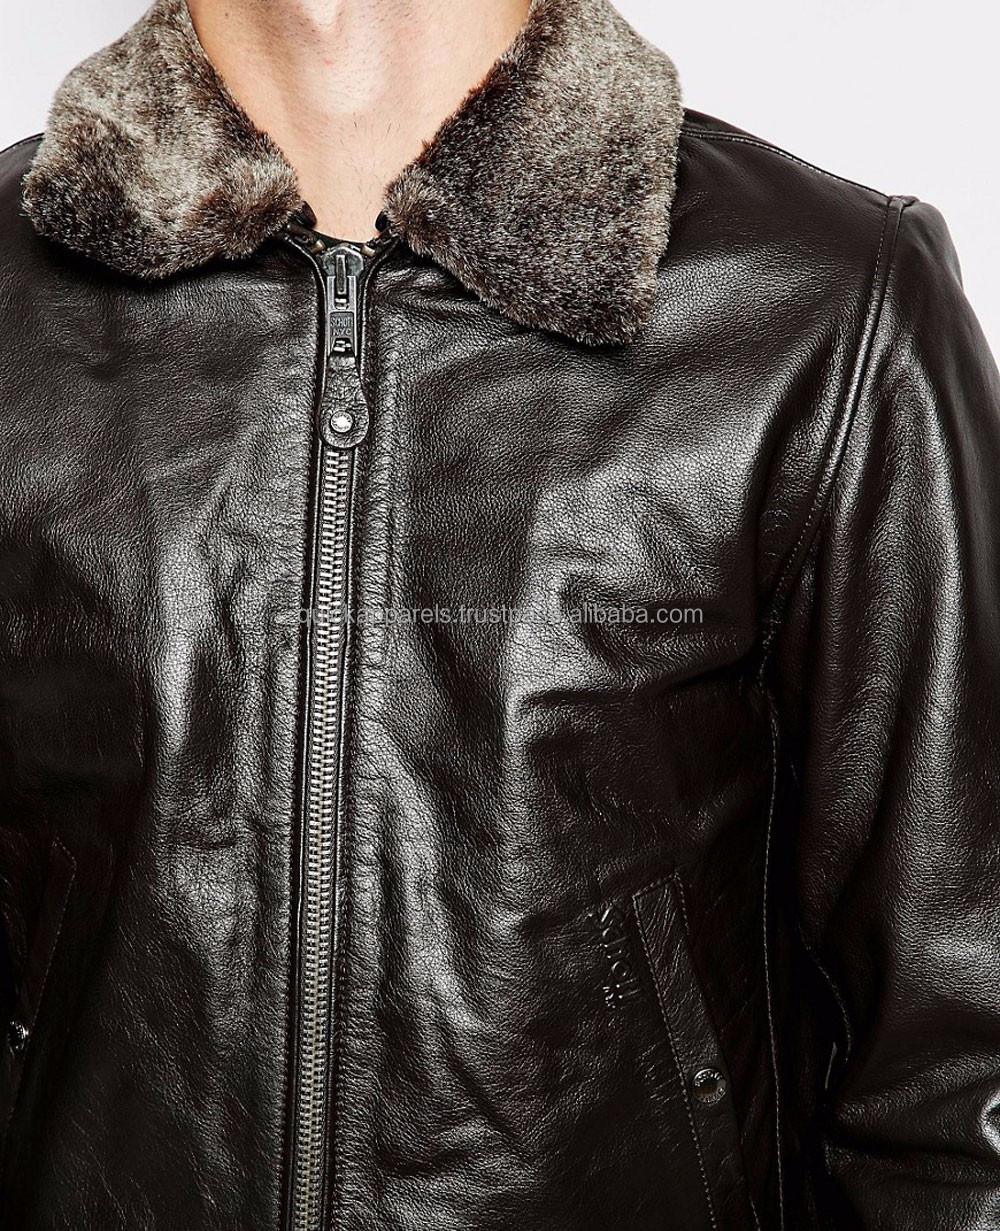 wholesale pu biker motorcycle leather pilot jacket price from china manufacturers